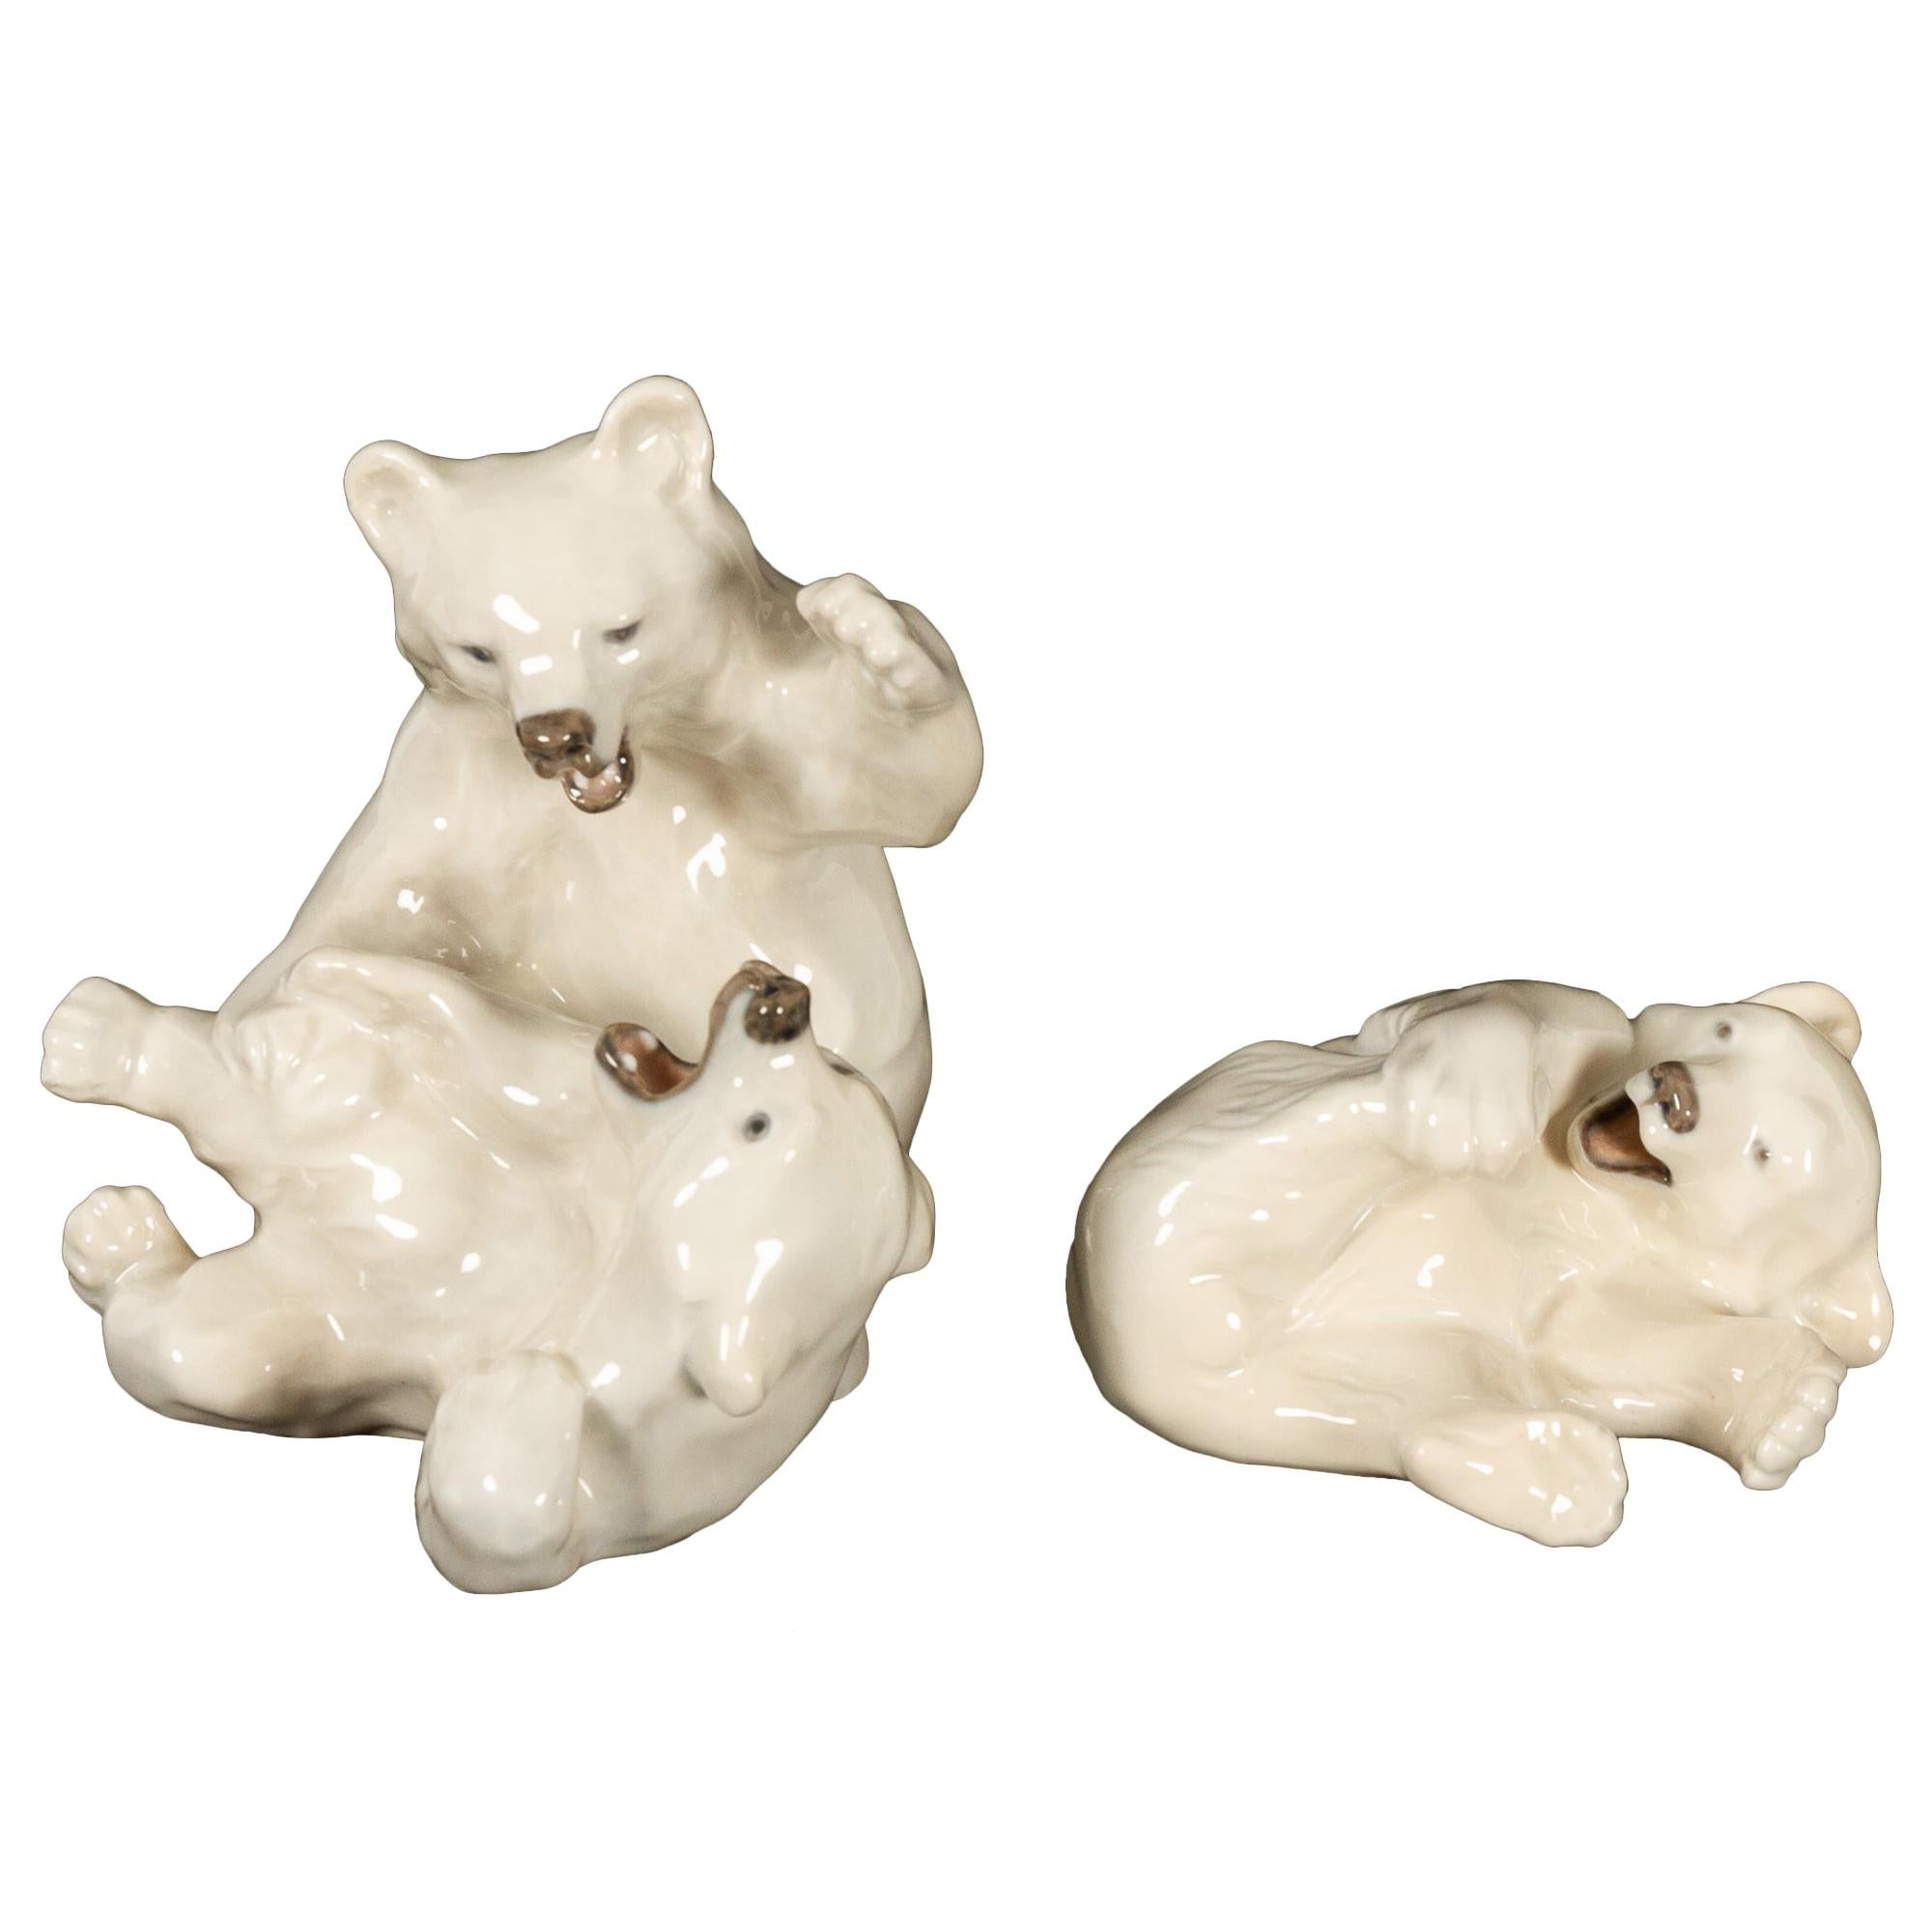 Danish Porcelain Polar Bear Cubs Figurines by Knud Kyhn for Royal Copenhagen